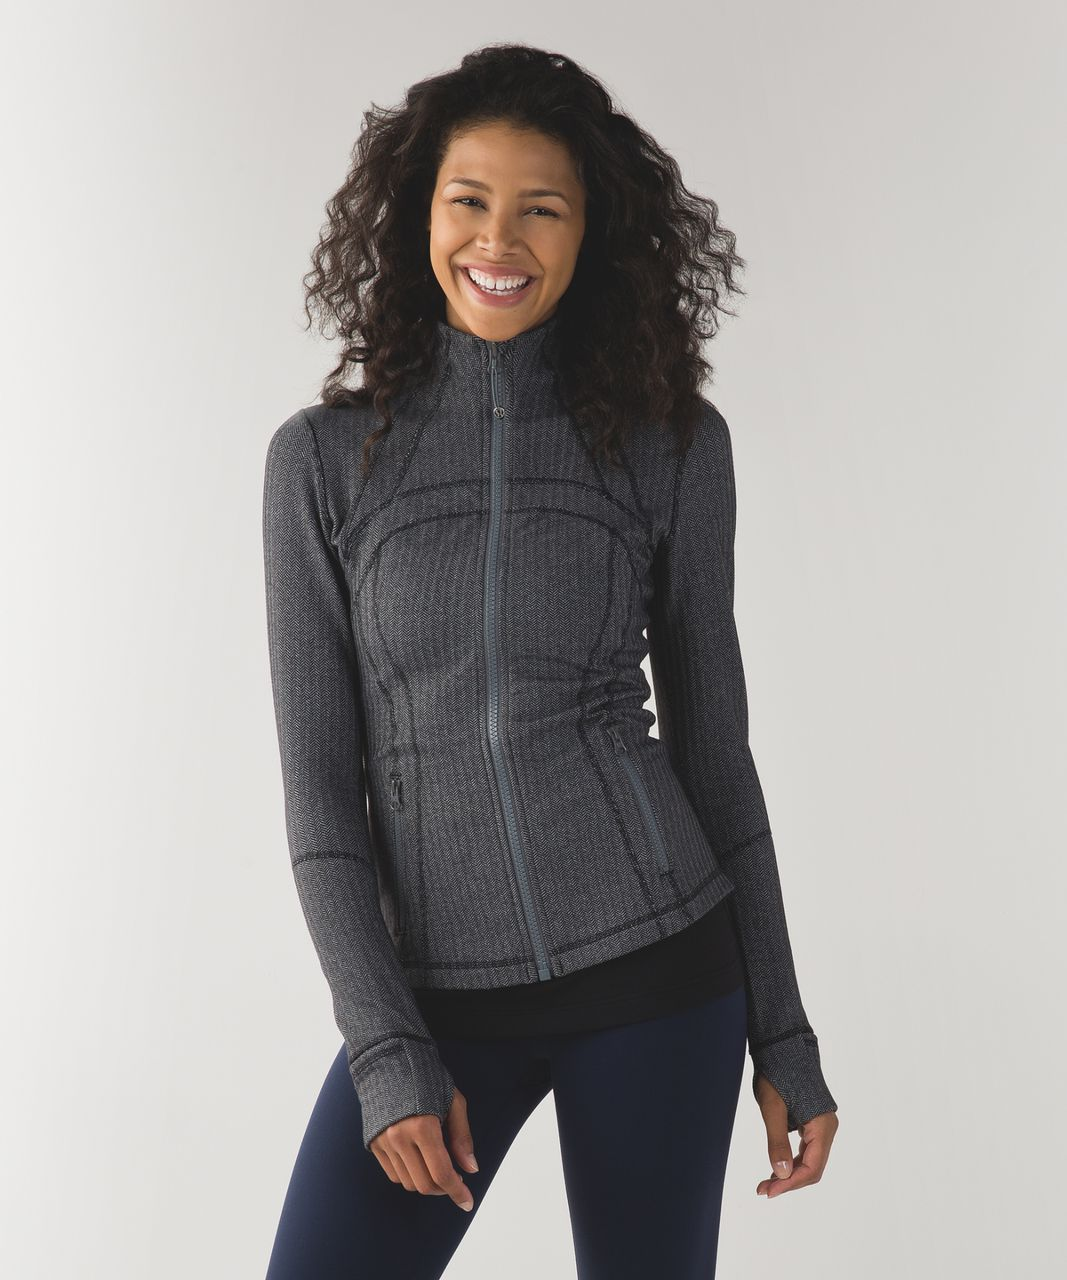 Lululemon Define Jacket - Heathered Herringbone Heathered Slate Black